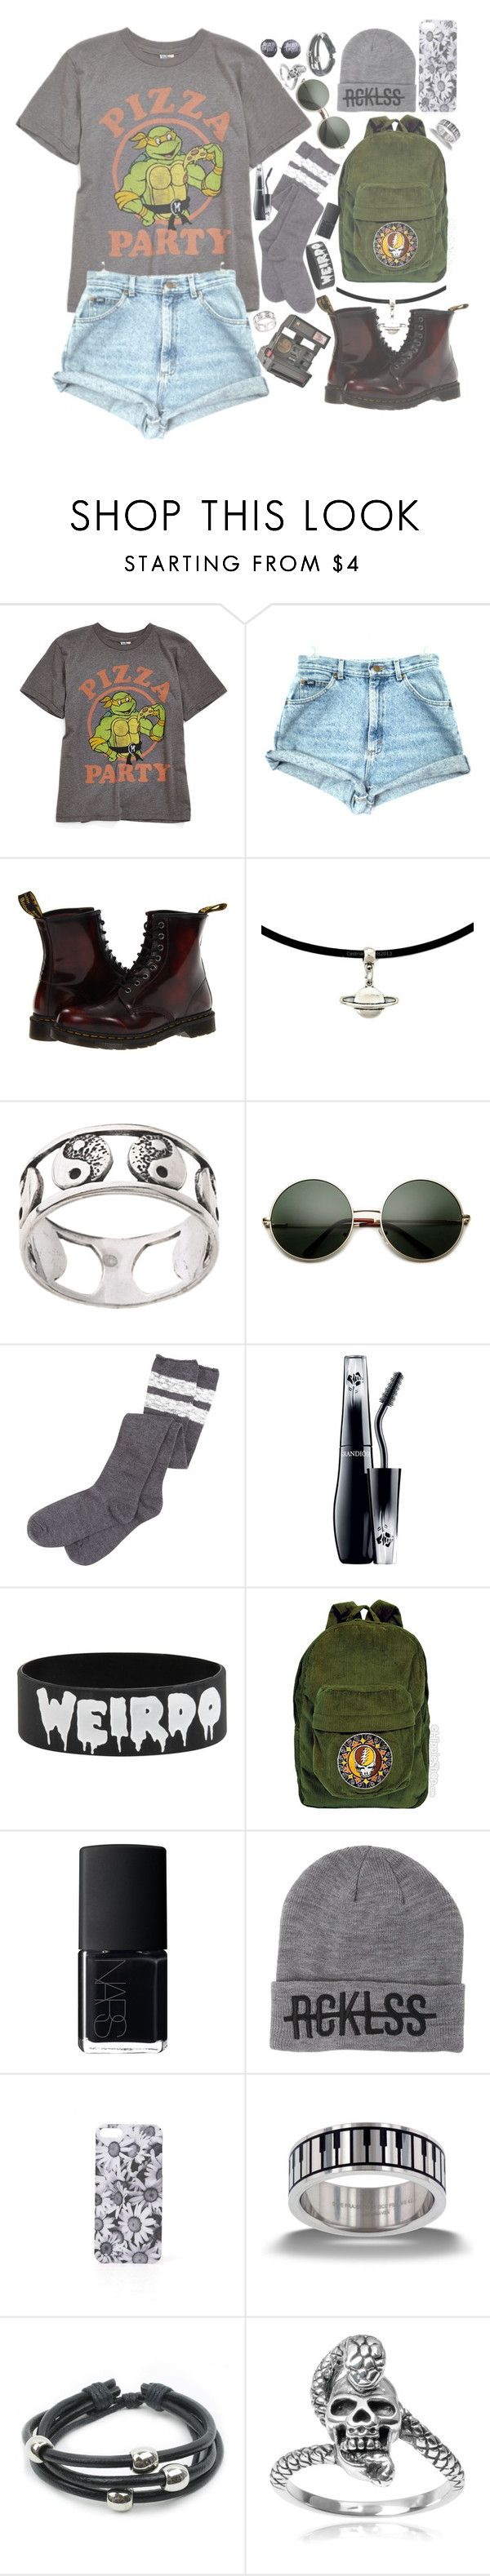 """""""Untitled #206"""" by xambergurlx ❤ liked on Polyvore featuring Junk Food Clothing, Dr. Martens, Polaroid, Carolina Glamour Collection, Lancôme, NARS Cosmetics, Young & Reckless, With Love From CA and Tressa"""